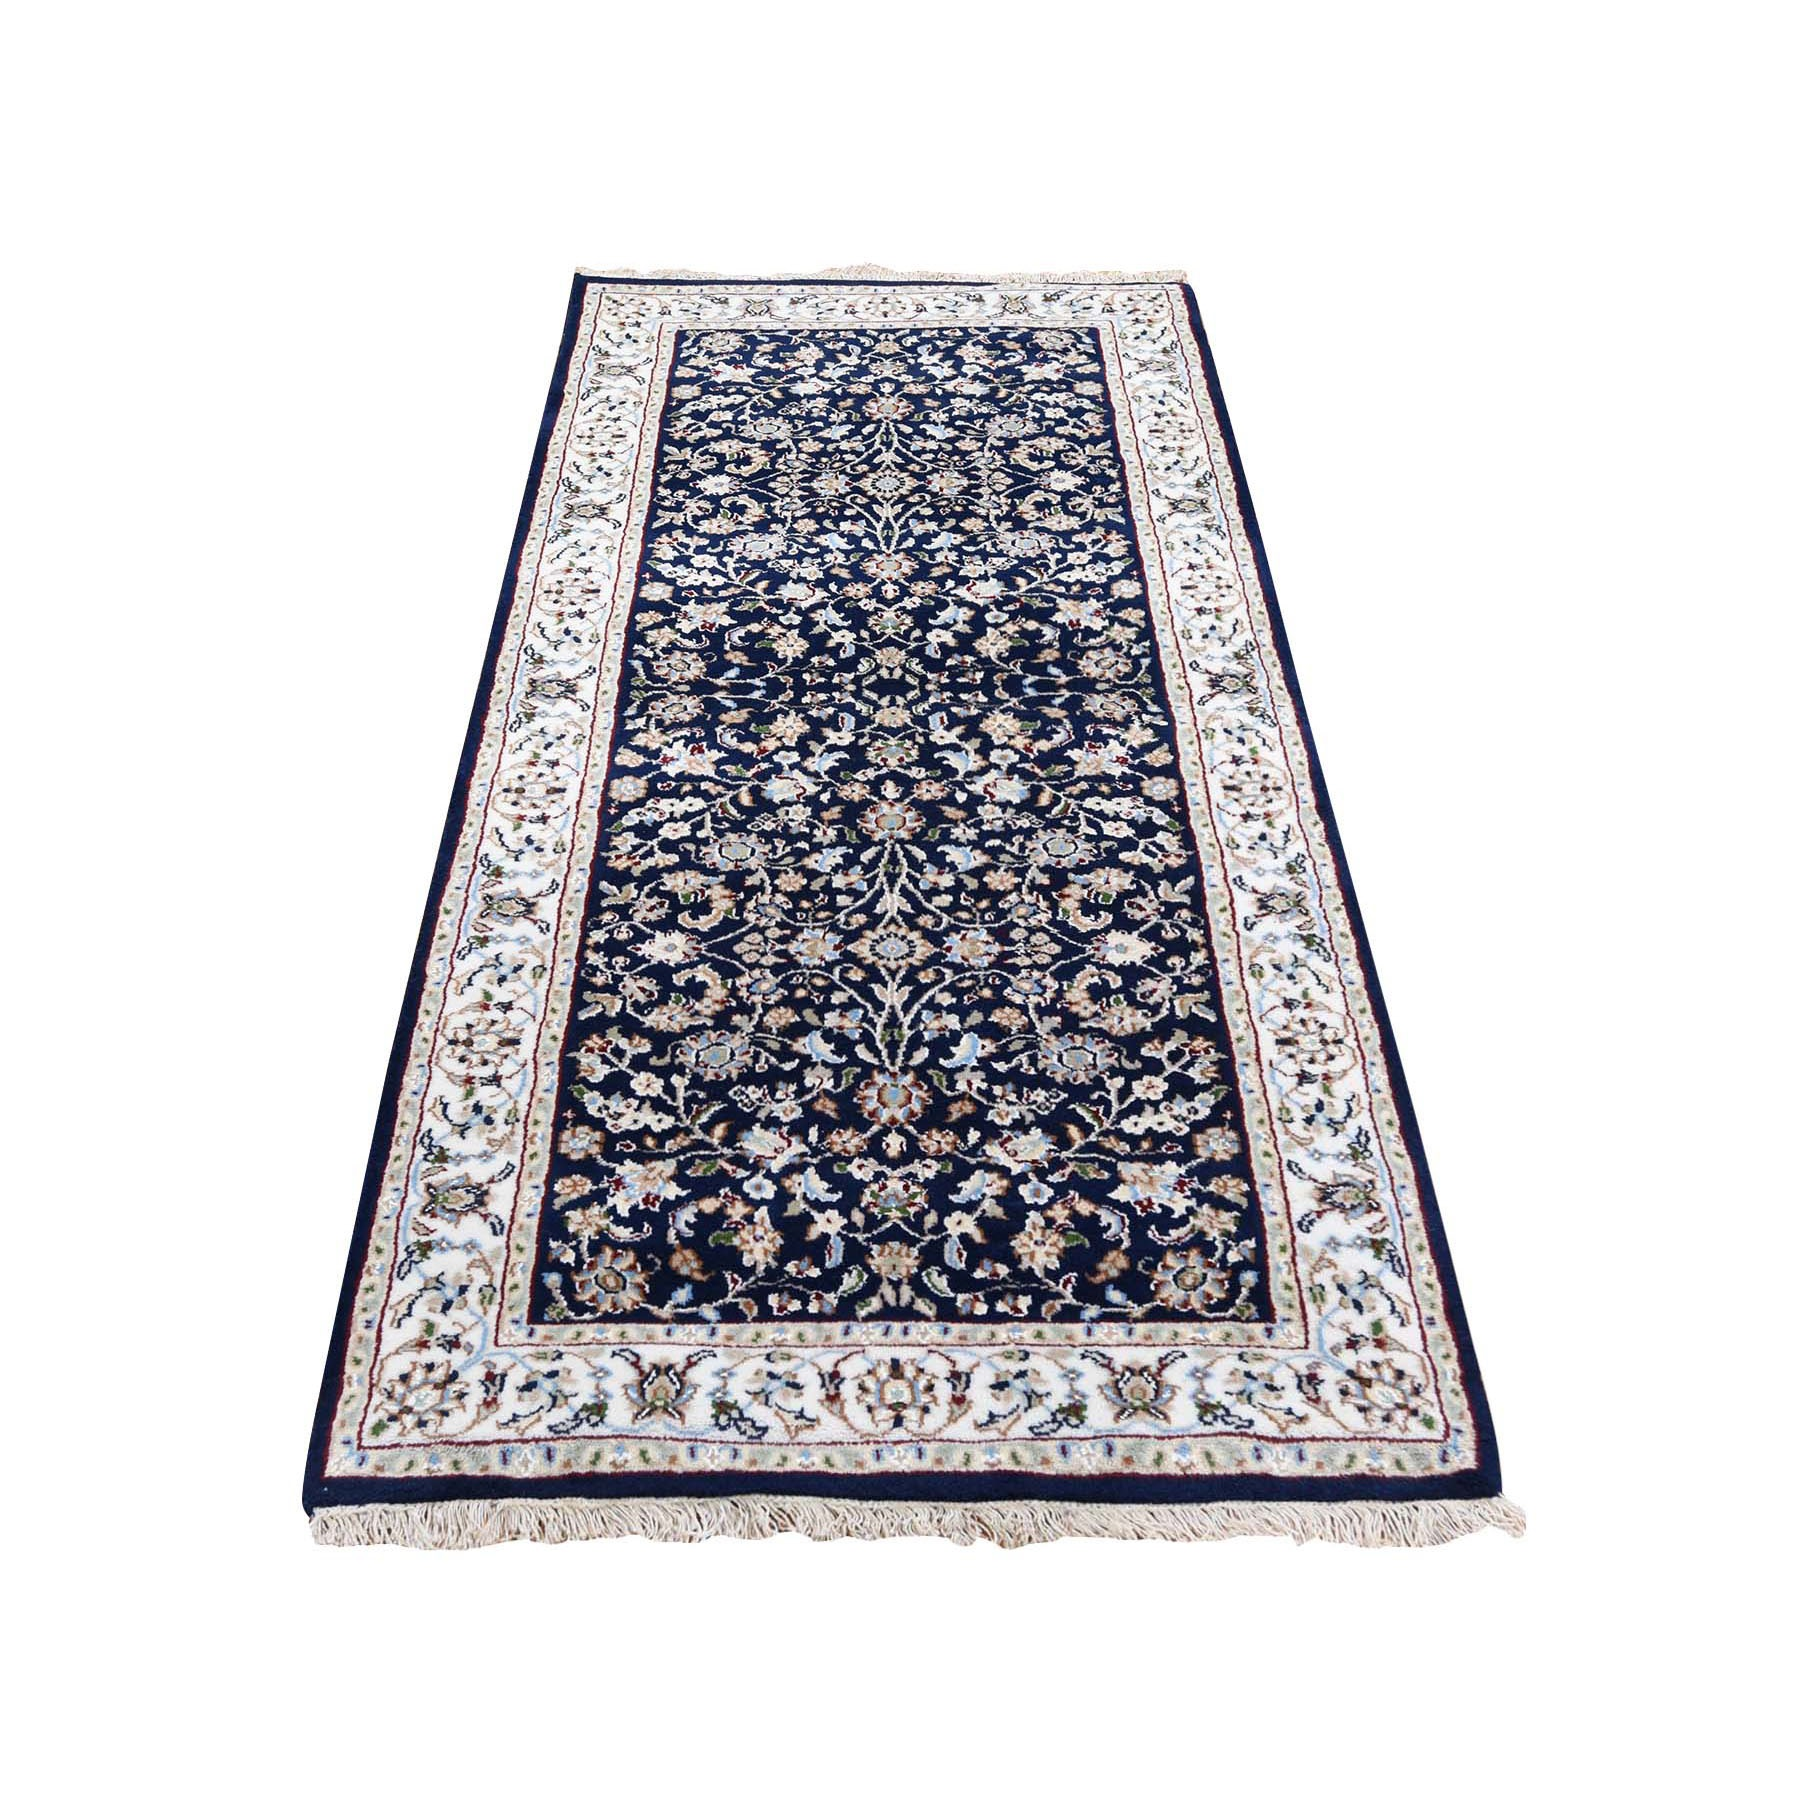 "2'8""x6' Wool And Silk 250 KPSI Navy Blue All Over Design Nain Runner Hand Knotted Oriental Rug"